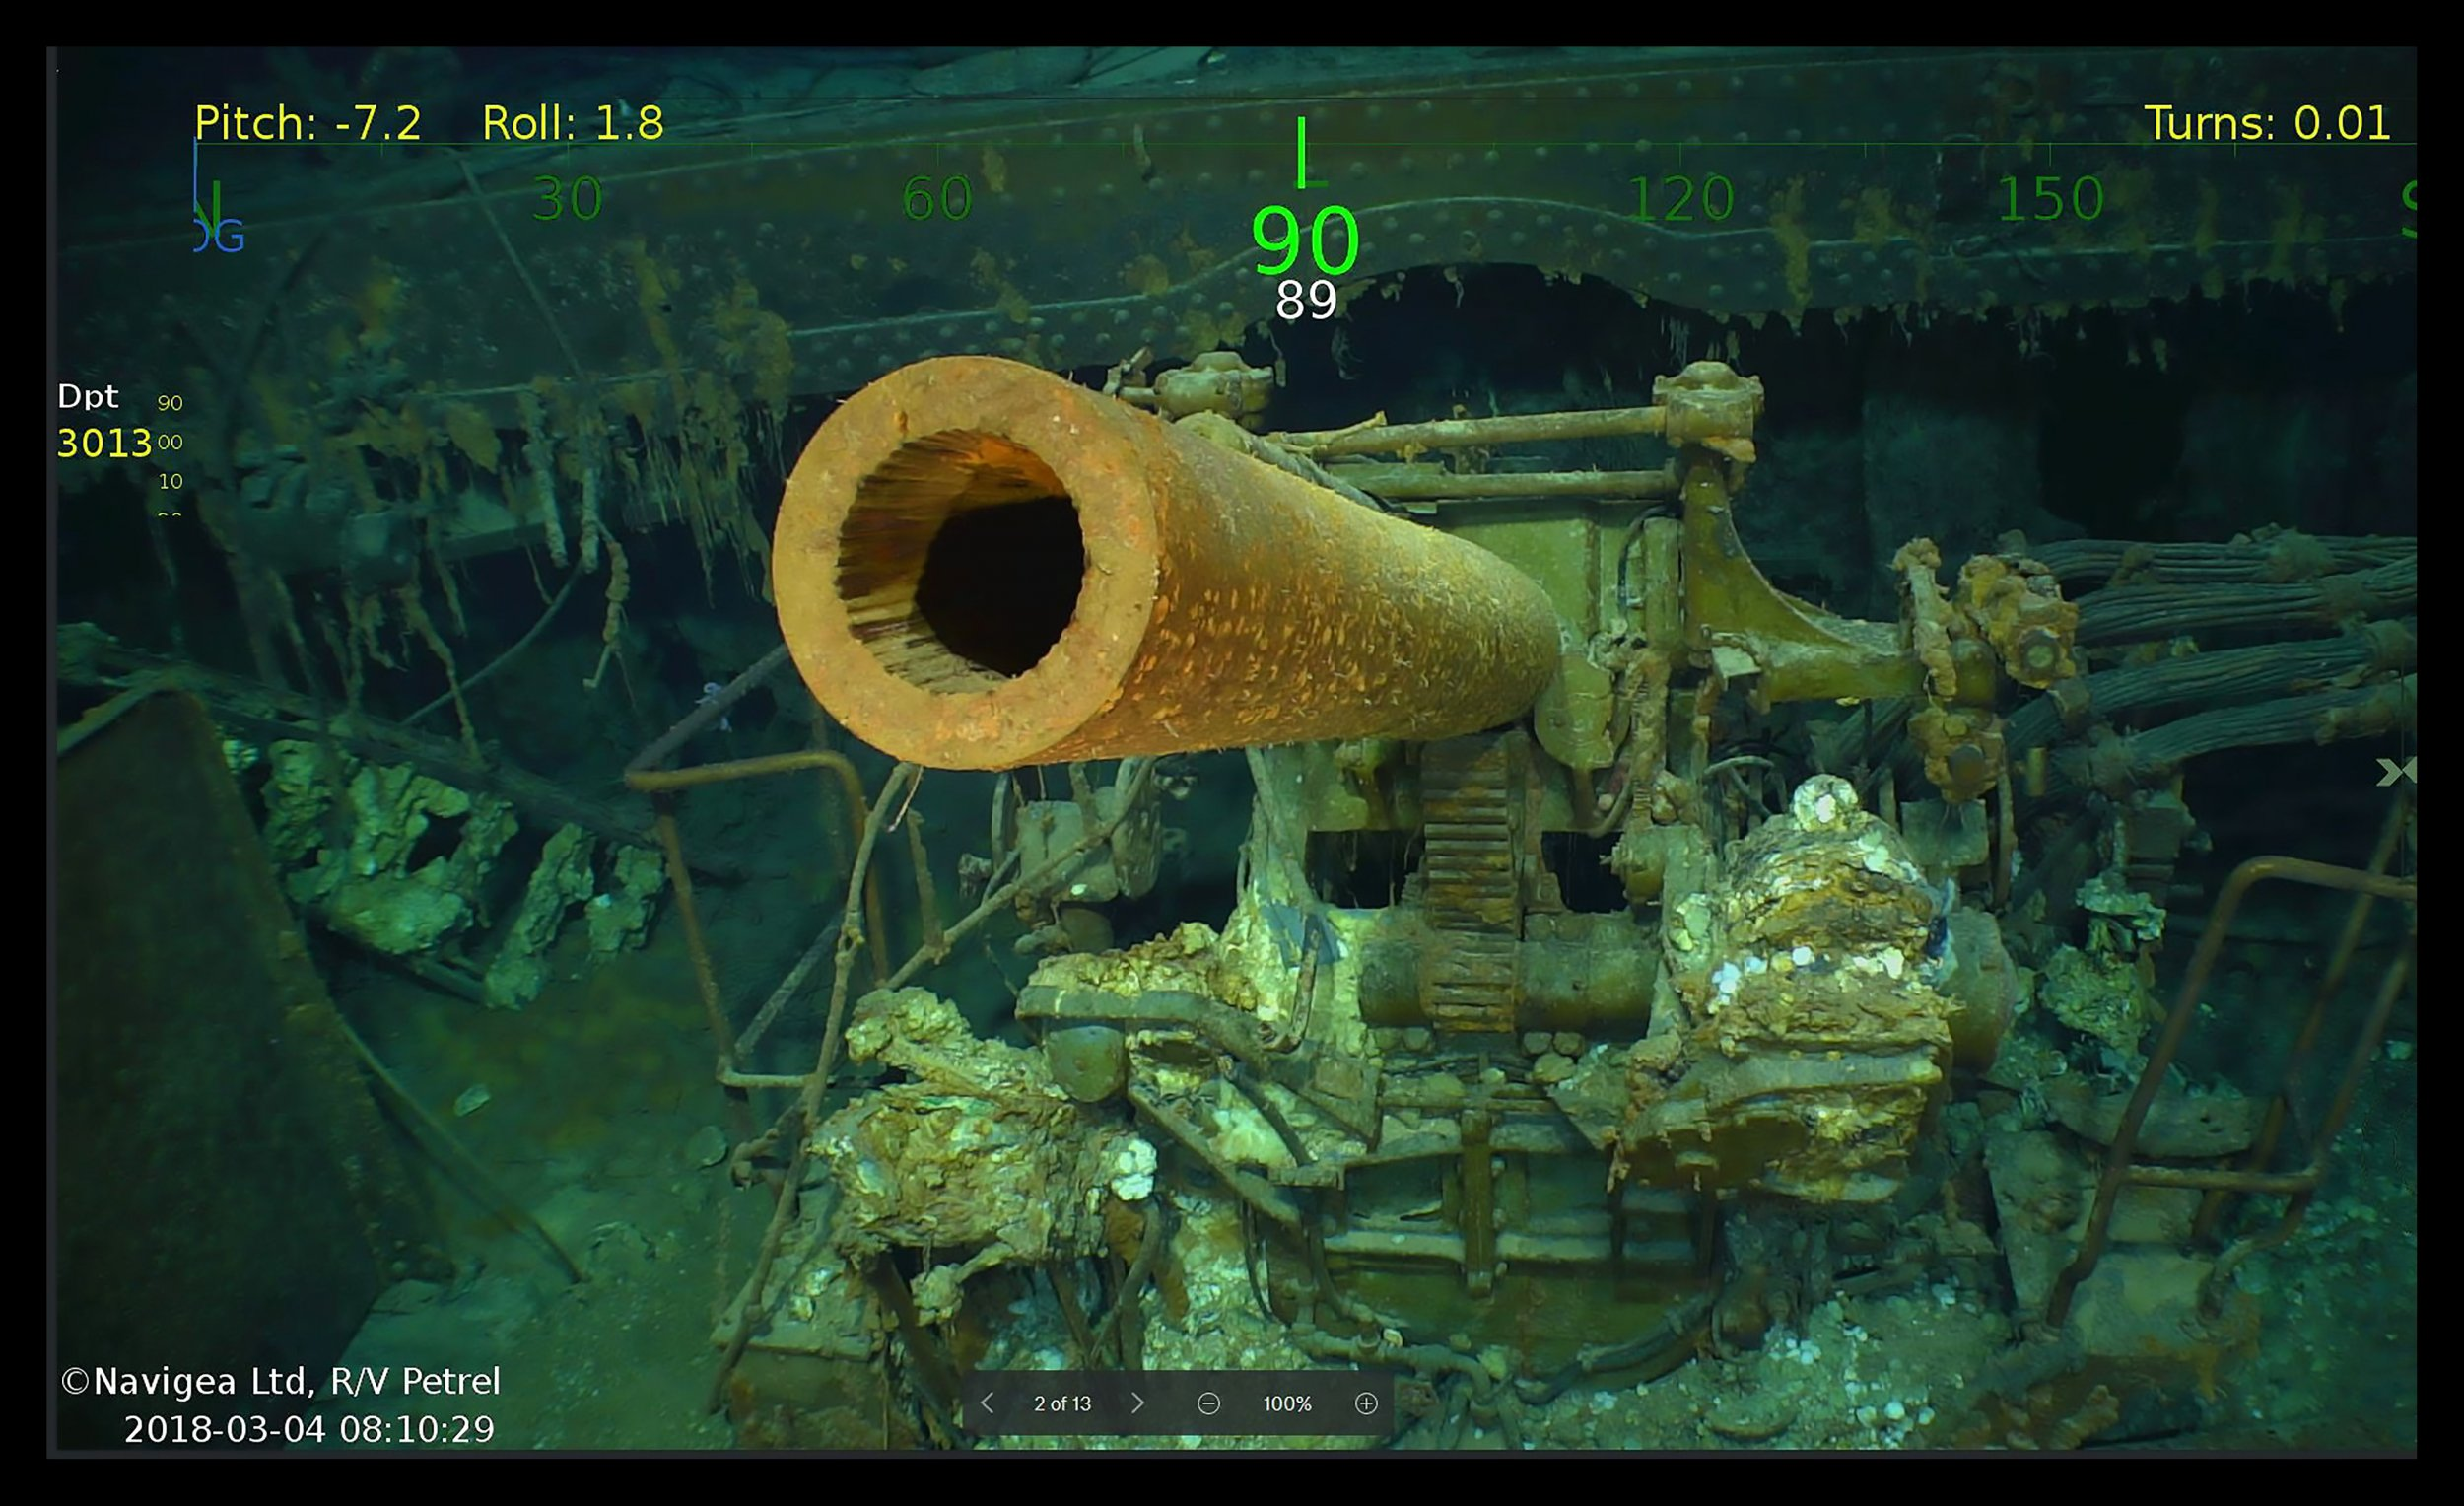 uss juneau  warship sunk by japan in world war ii